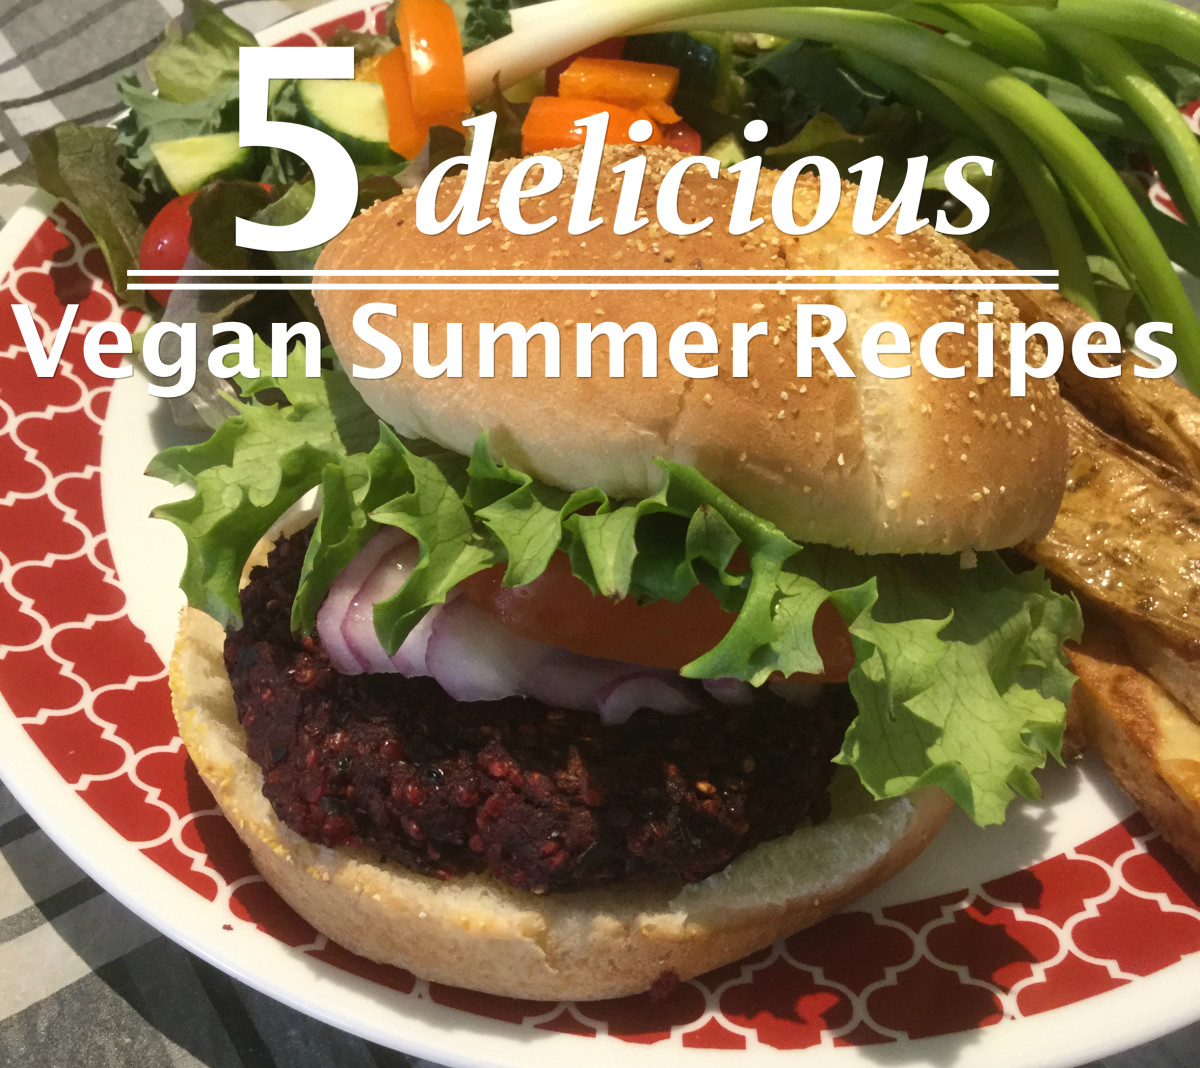 Top 5 Easy Vegan Summer Recipes